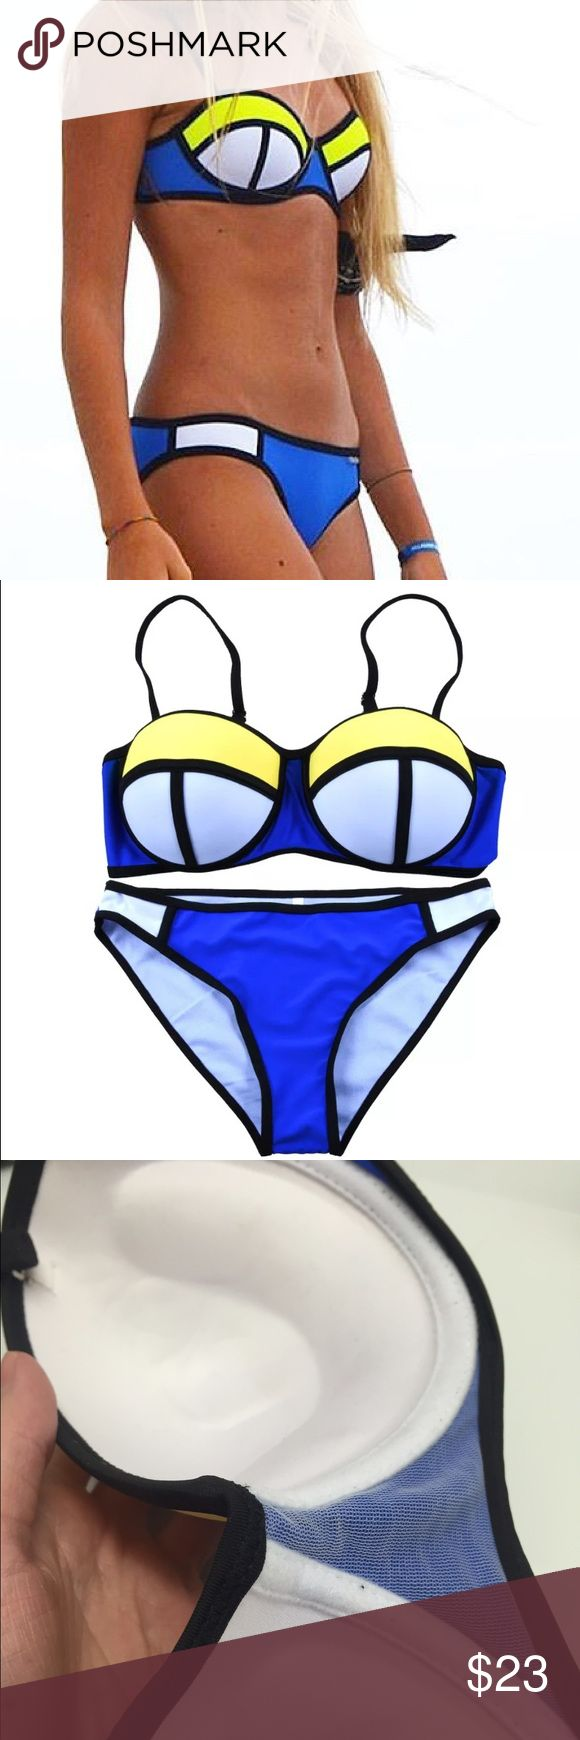 Blue Yellow White Bikini Set Balconet Balconette New, no tags S: bottoms XS or XXS (00), top B, maybe C (I'm a 32D and it's a bit small) M: bottoms 0-2, top C-D (It fits me). L: bottoms 0-3, top D - maybe DD (its too big on me but it's so molded you can't really tell) I had one person complain it was too small more like a C but they were Dd-Ddd  Cup is molded and does not lay flat so if you are pretty flat chested it might be a bit big.  Not neoprene. Top has push up like the 3rd photo…